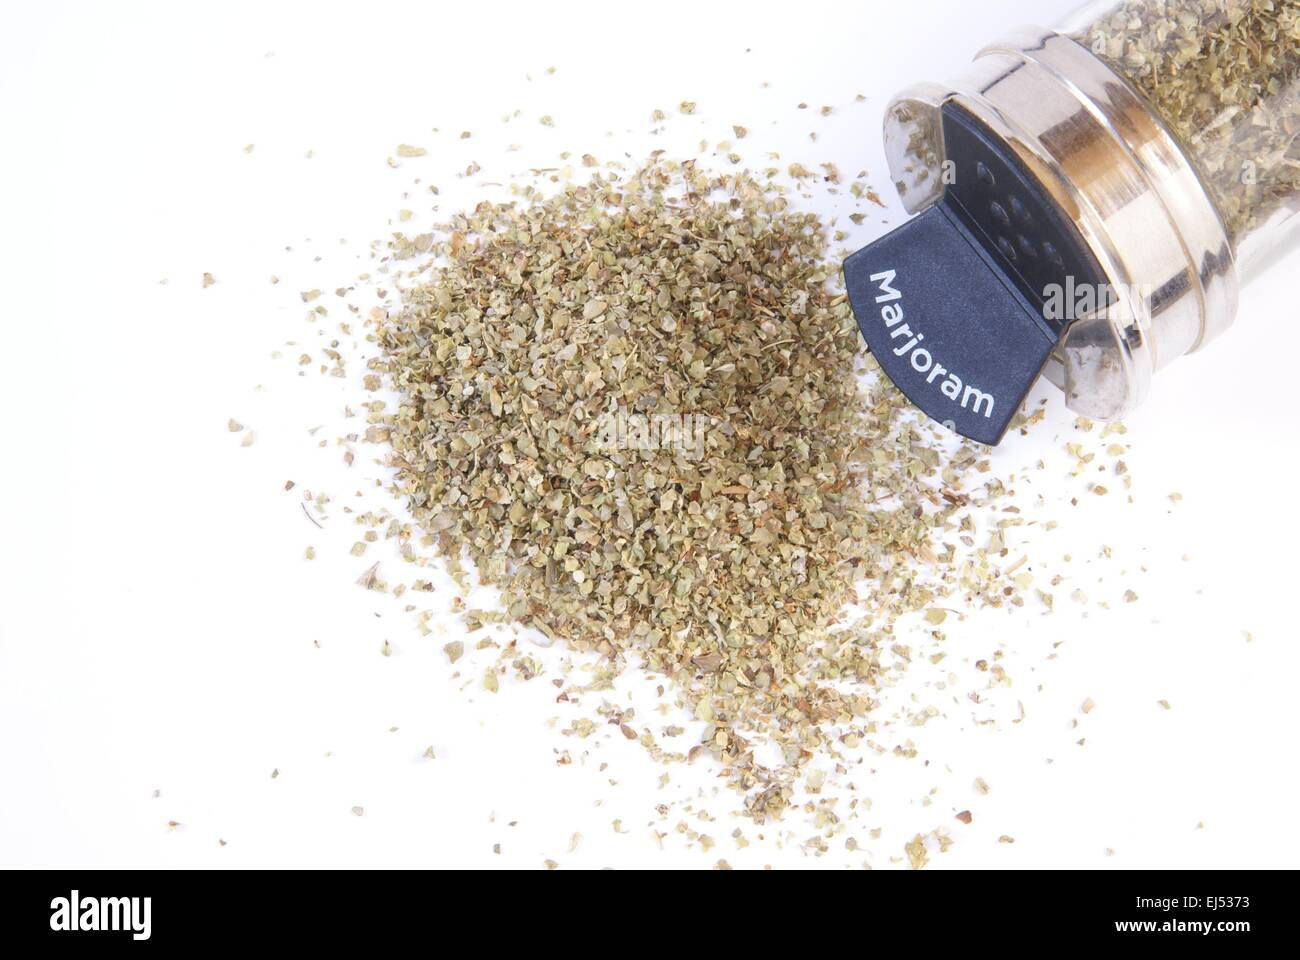 Dried marjoram spice on a white background with glass spice jar next to it. - Stock Image